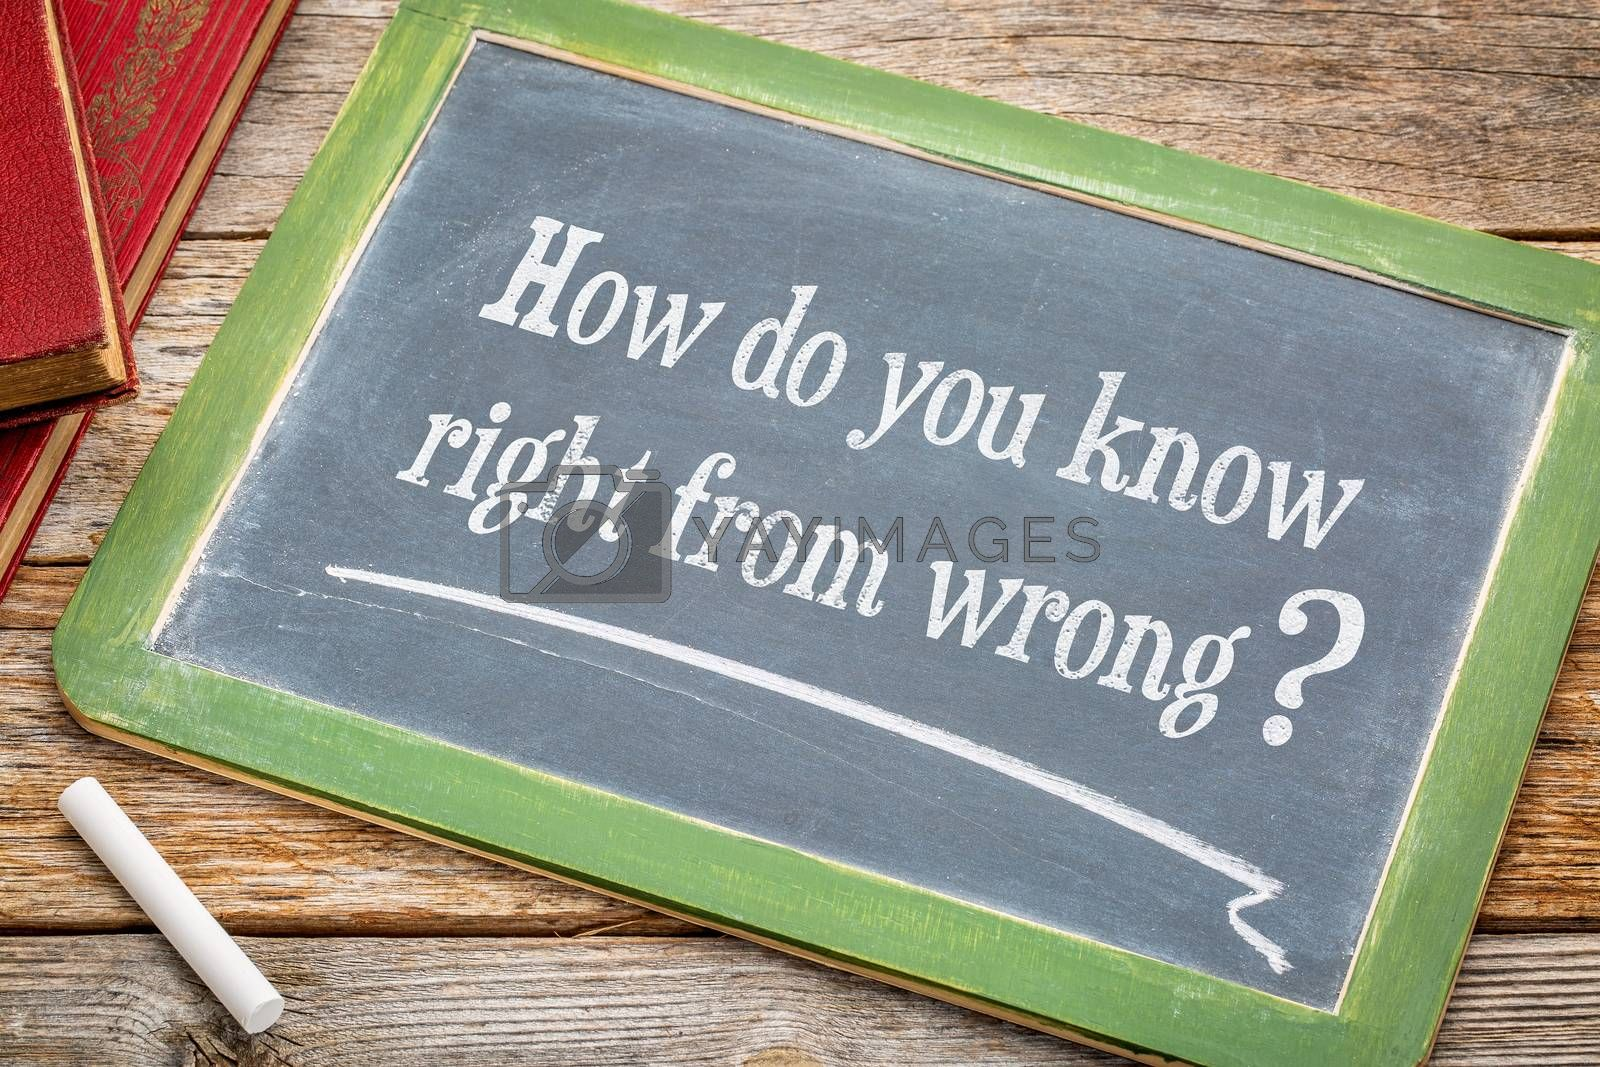 How do you know right from good - ethics question on a slate blackboard with a white chalk and a stack of books against rustic wooden table